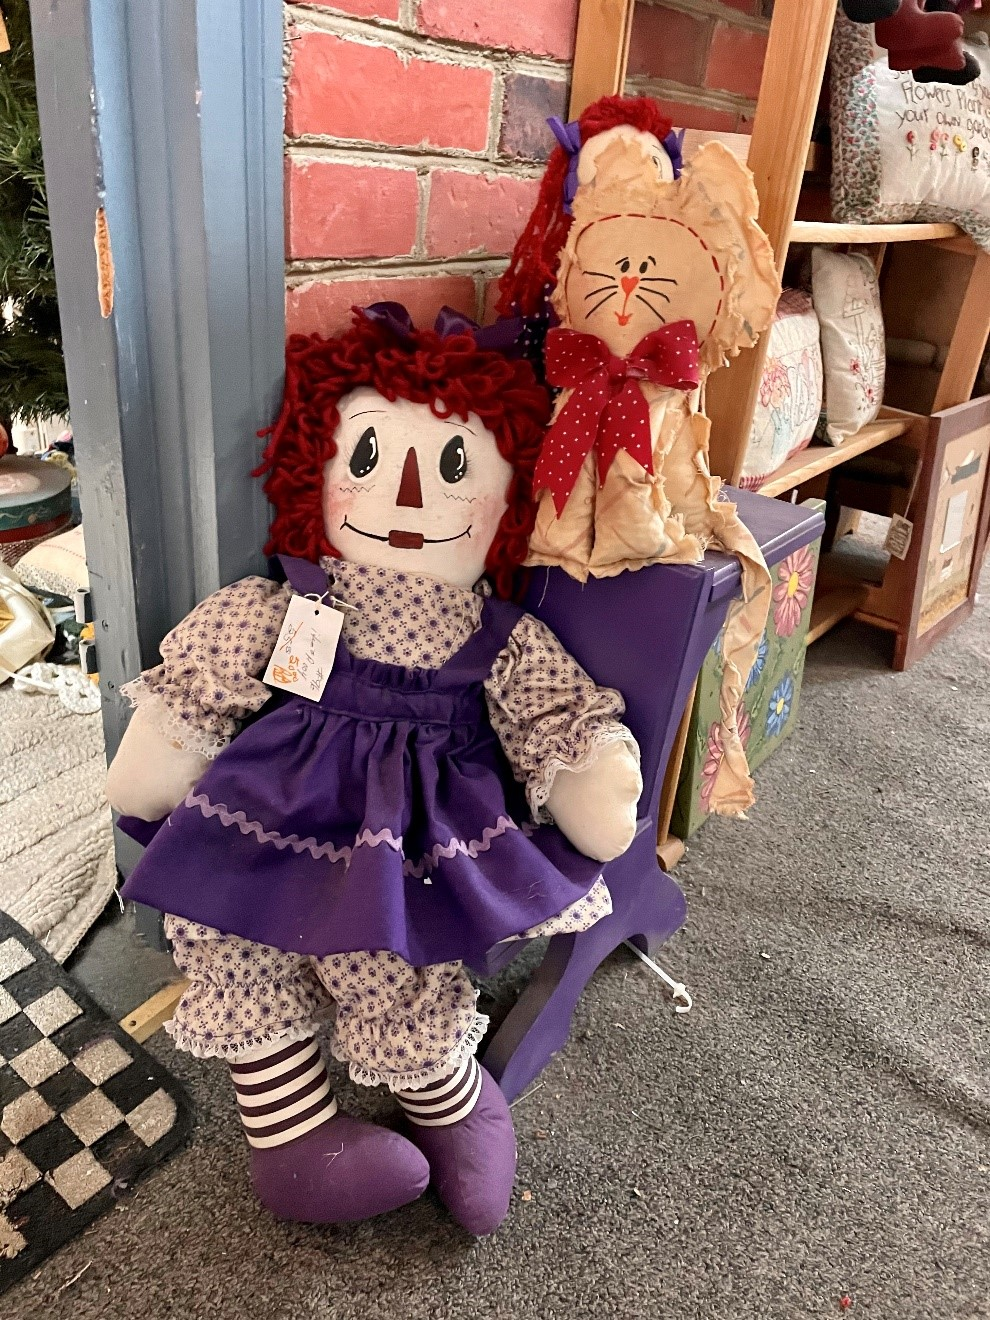 A picture containing doll, toy  Description automatically generated